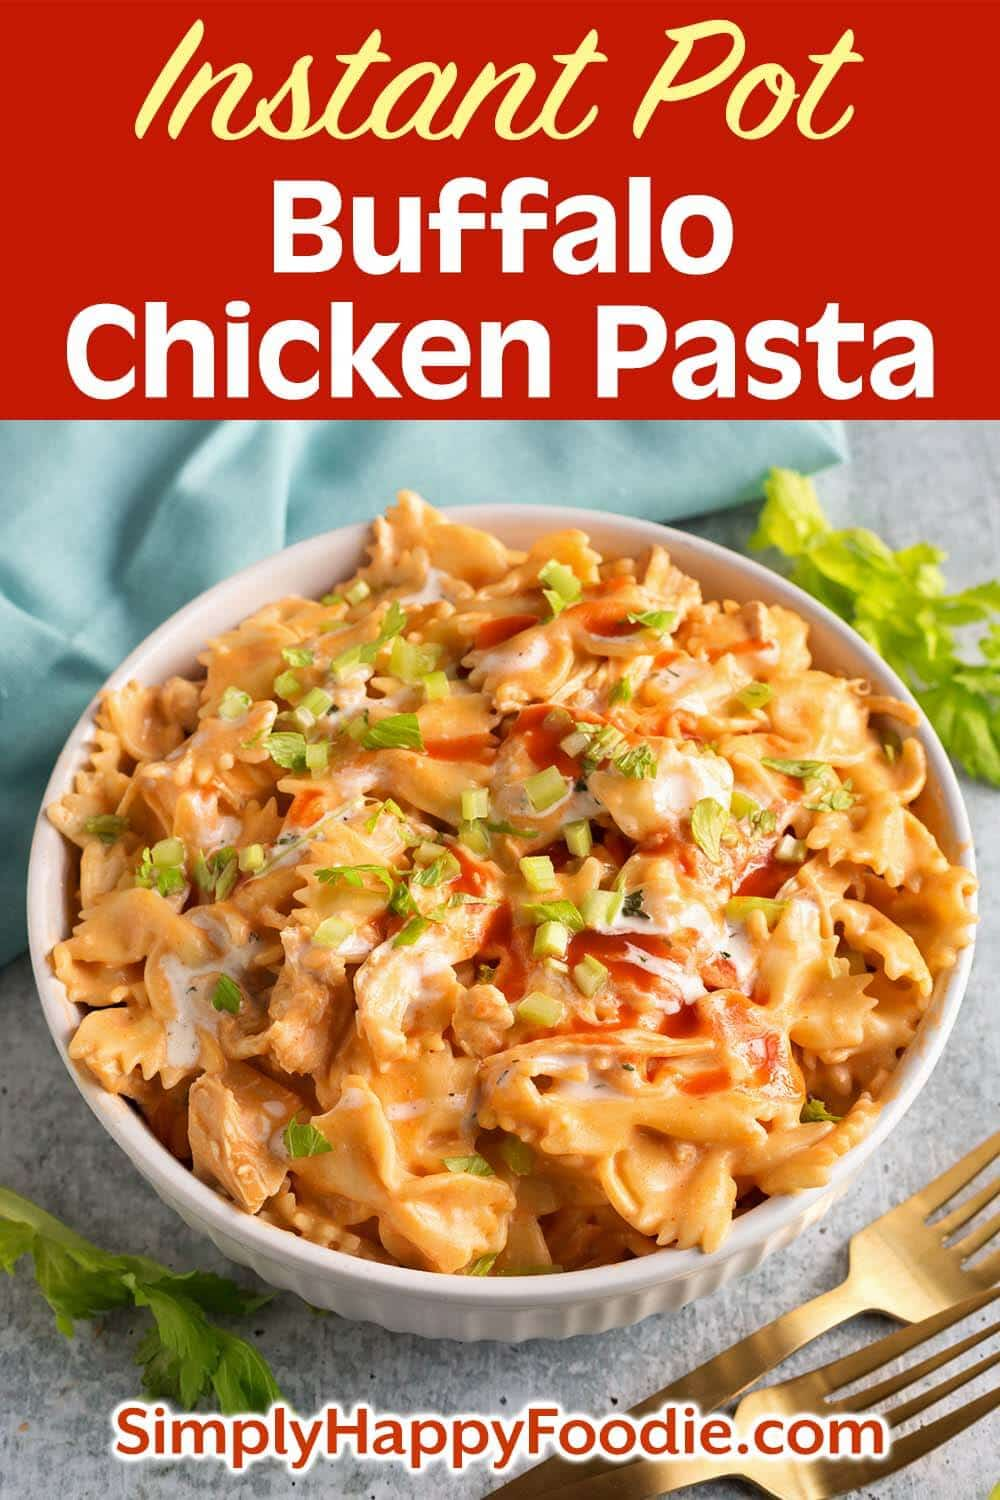 Instant Pot Buffalo Chicken Pasta is zesty, rich, and delicious! The flavor is like that of Buffalo Chicken Wings, only in a bowl of creamy, cheesy pasta! This pressure cooker Buffalo Chicken Pasta is easy to make, and is great for a weeknight meal, or for a Game Day party! Instant Pot recipes by simplyhappyfoodie.com #instantpotbuffalochickenpasta #pressurecookerbuffalochickenpasta